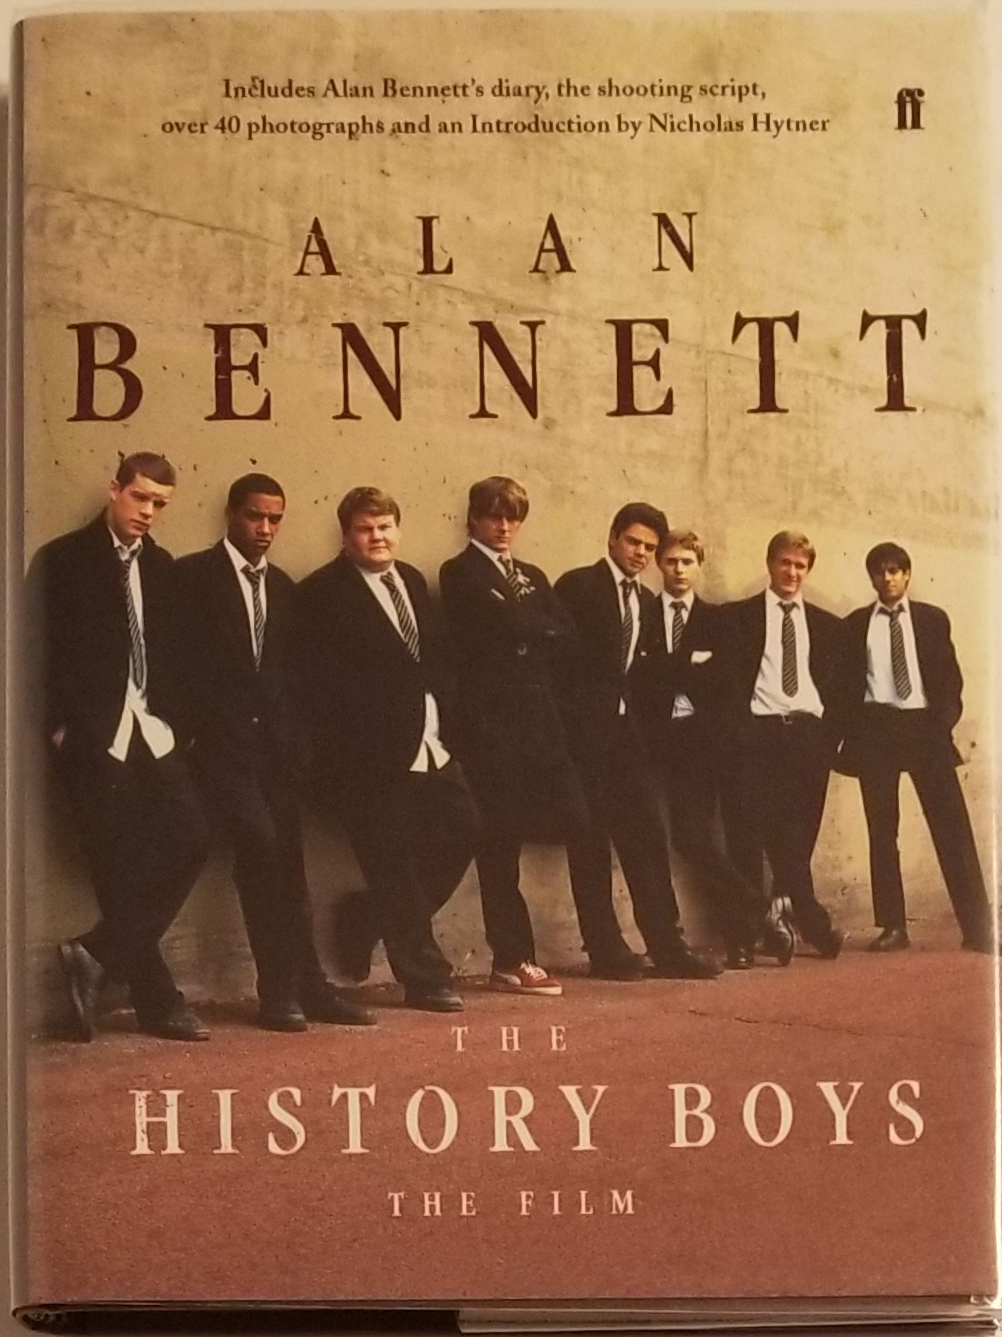 THE HISTORY BOYS: THE FILM. With an Introduction by Nicholas Hytner. Alan Bennett.